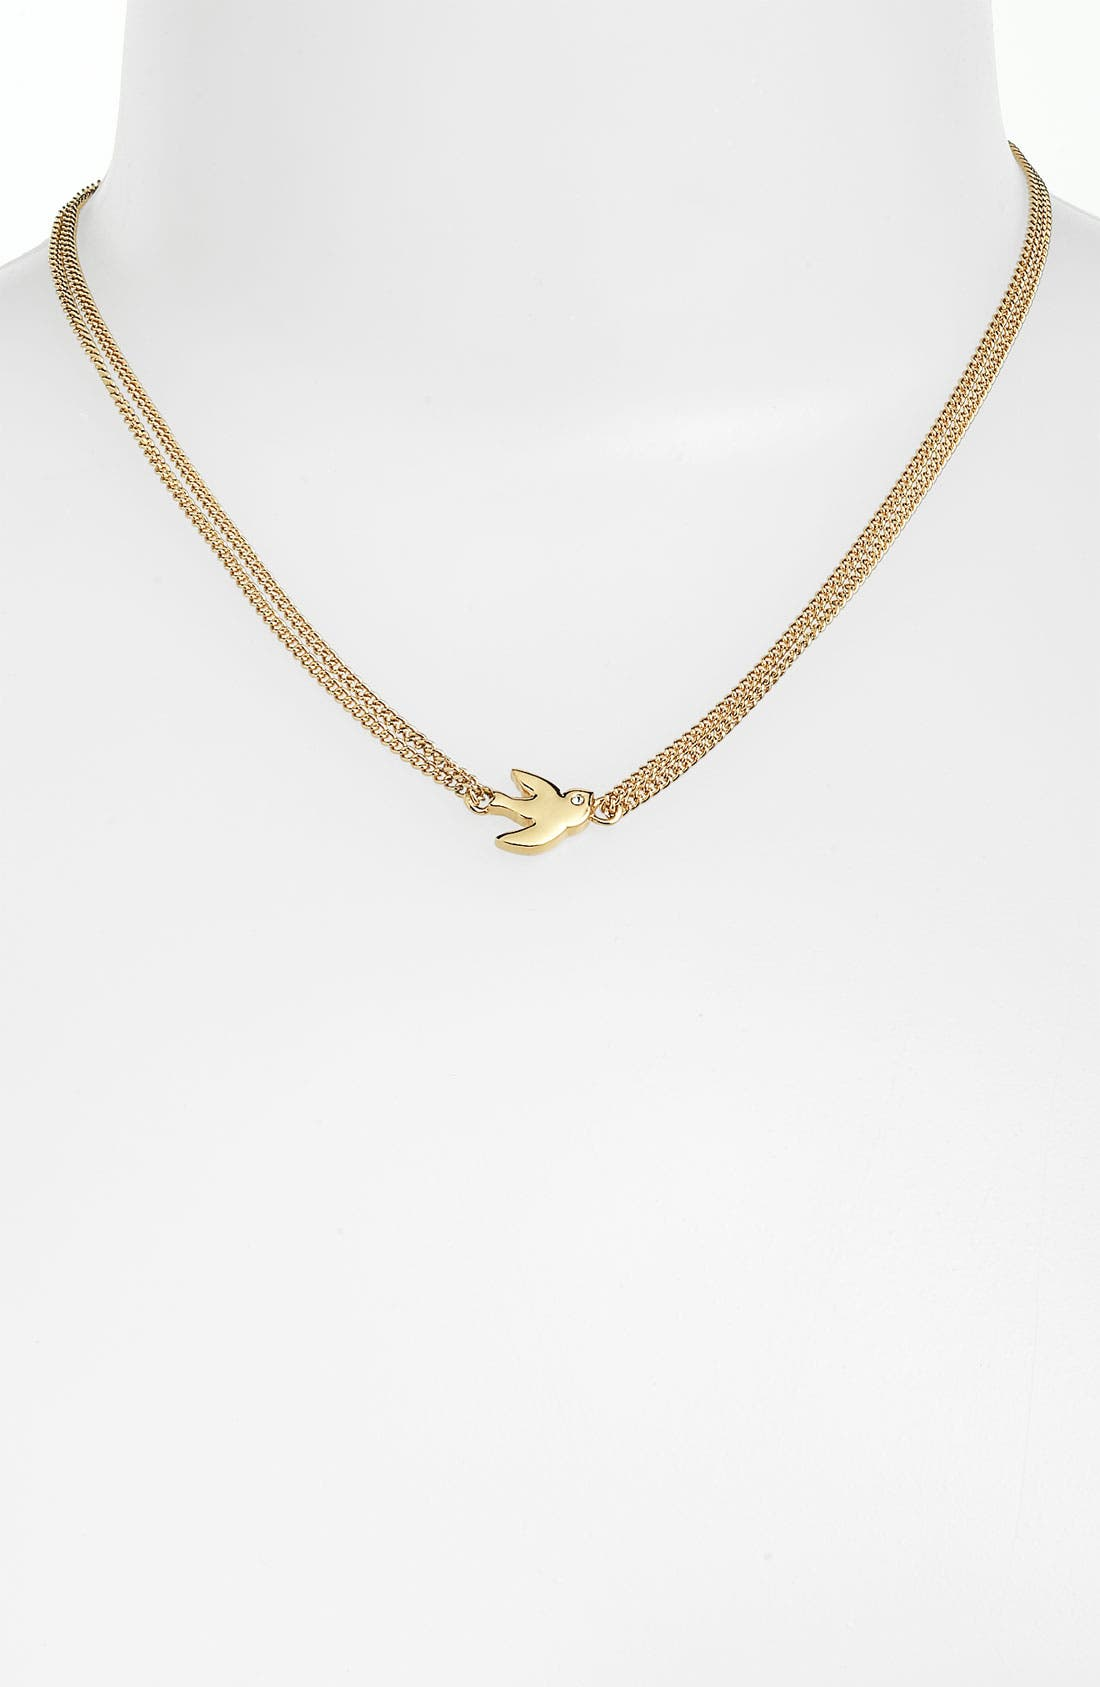 Main Image - MARC BY MARC JACOBS 'Oiseau d'Amour' Pendant Necklace